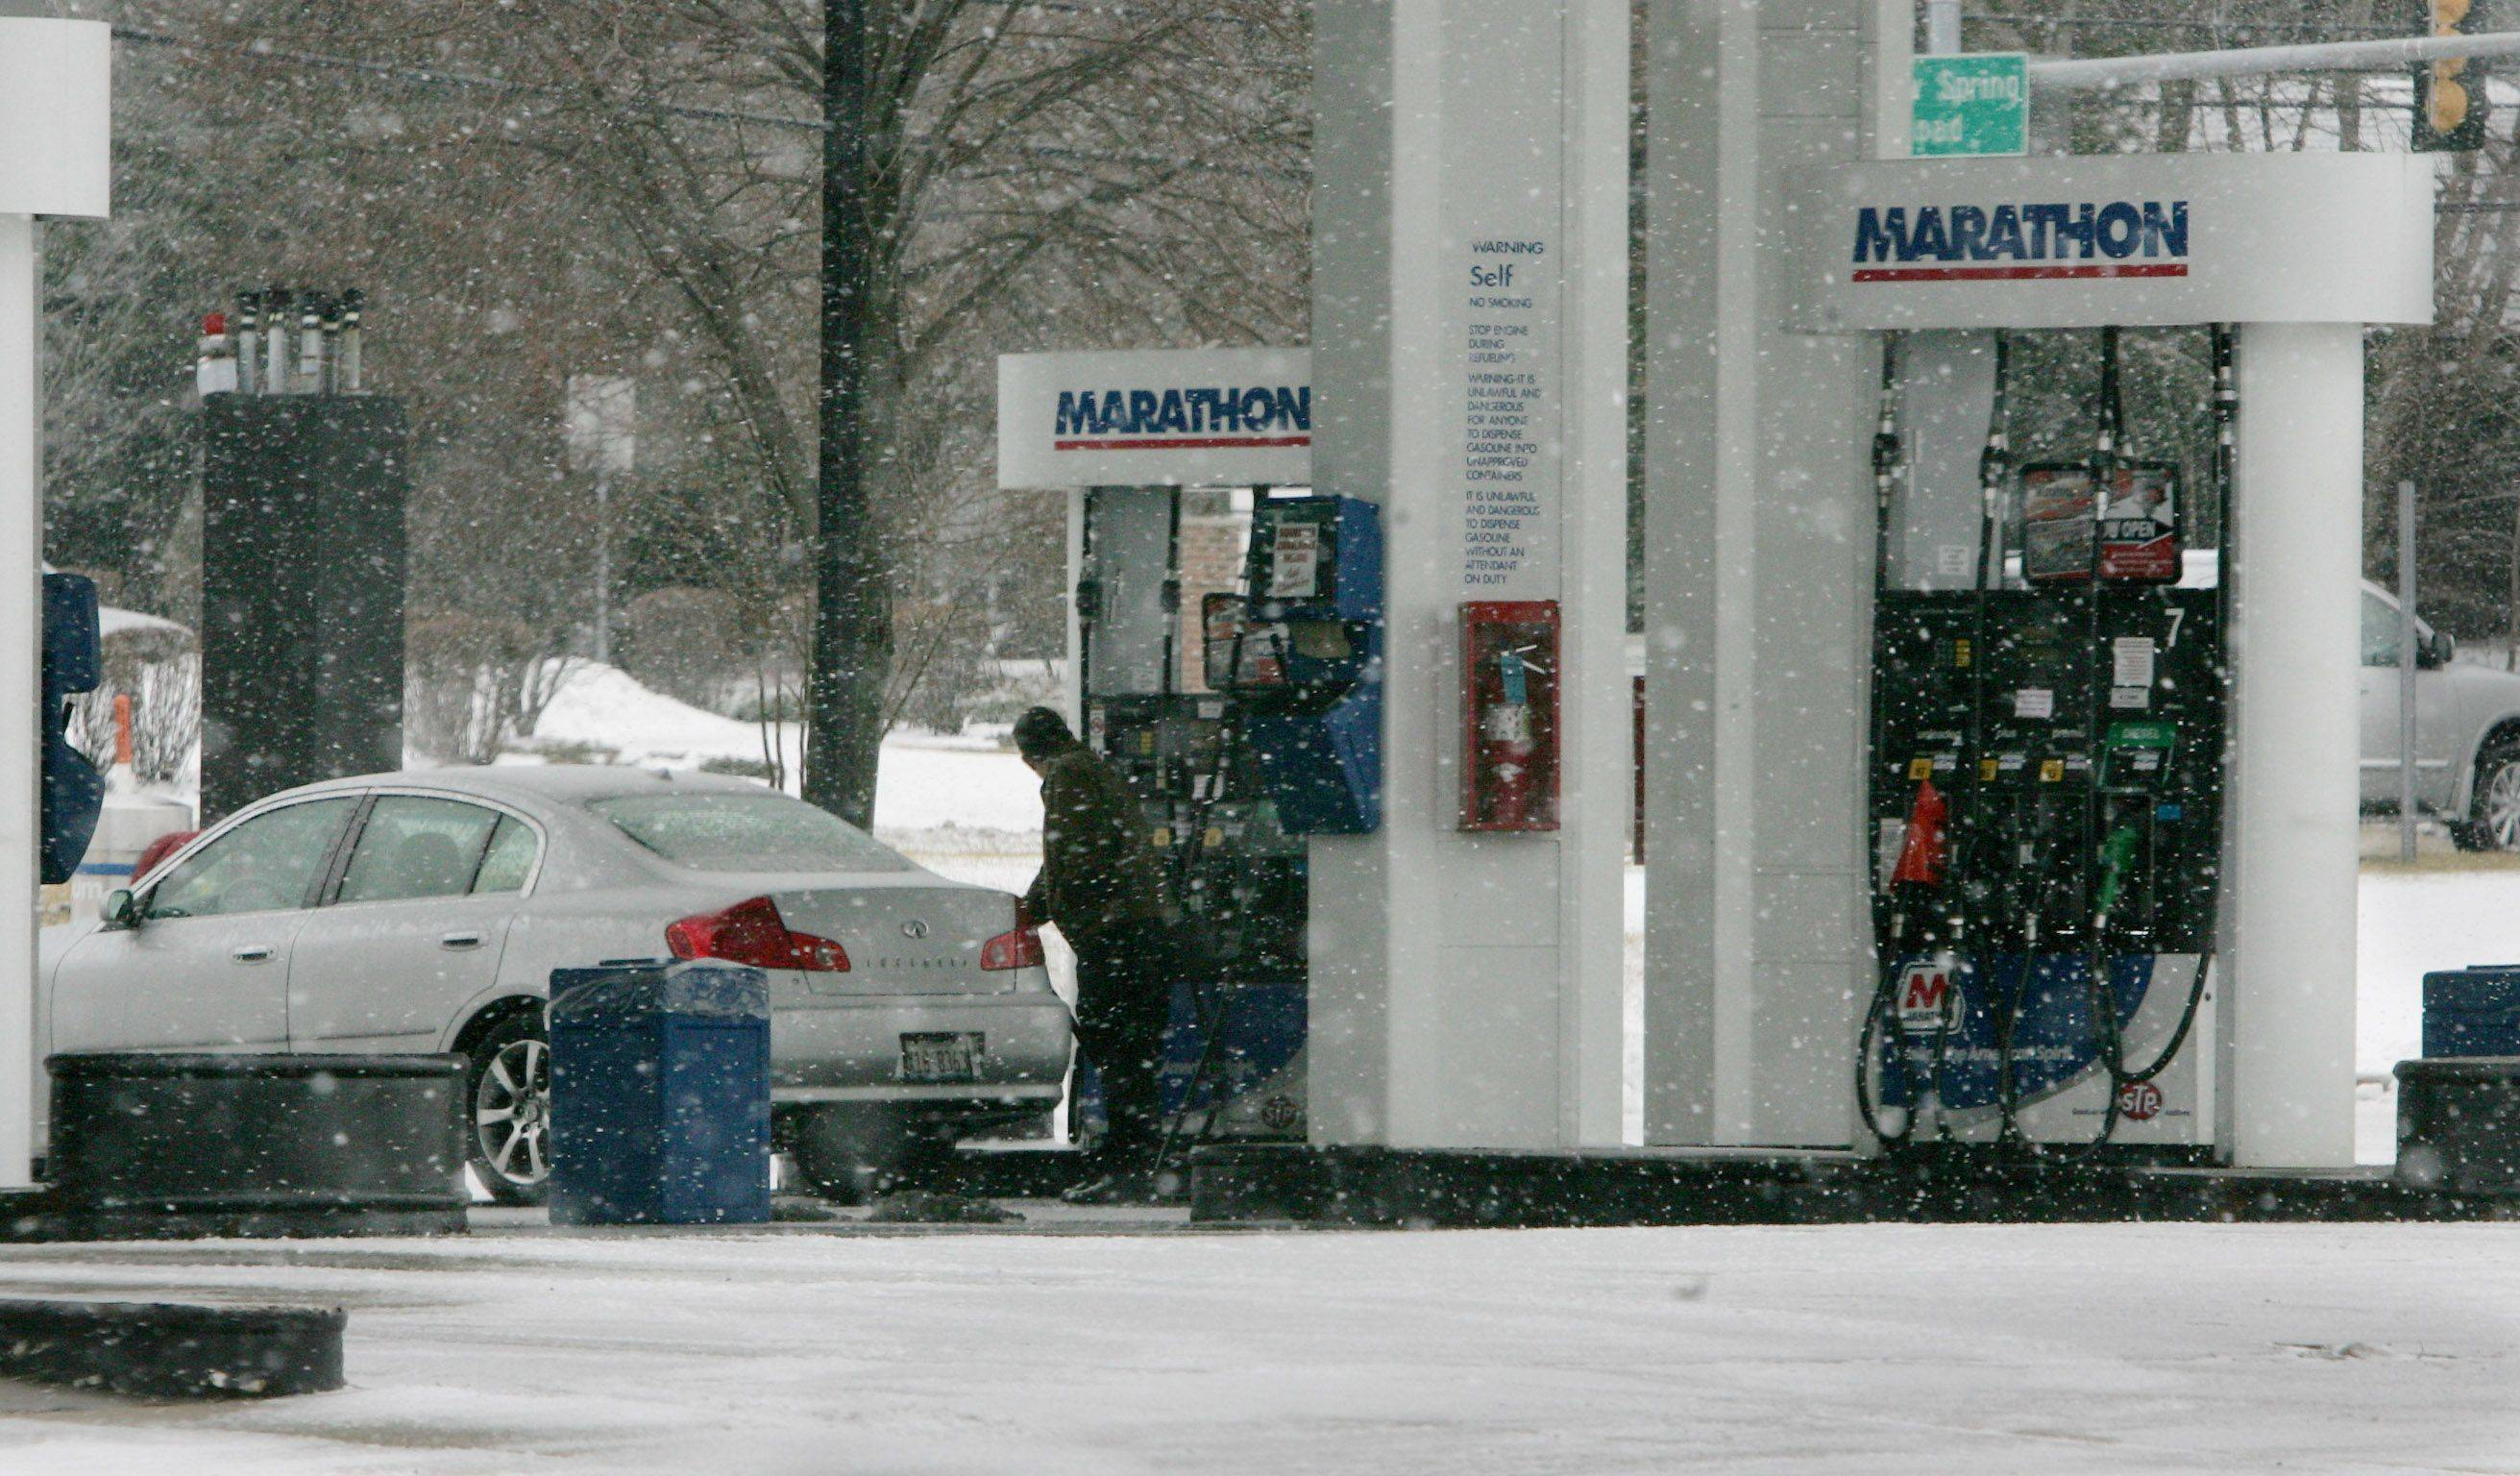 Last year, state agriculture department inspectors found that more than 35 percent of this Mundelein gas station's fuel lines were faulty. New owners of the station said costly repairs were made to bring the lines into compliance.